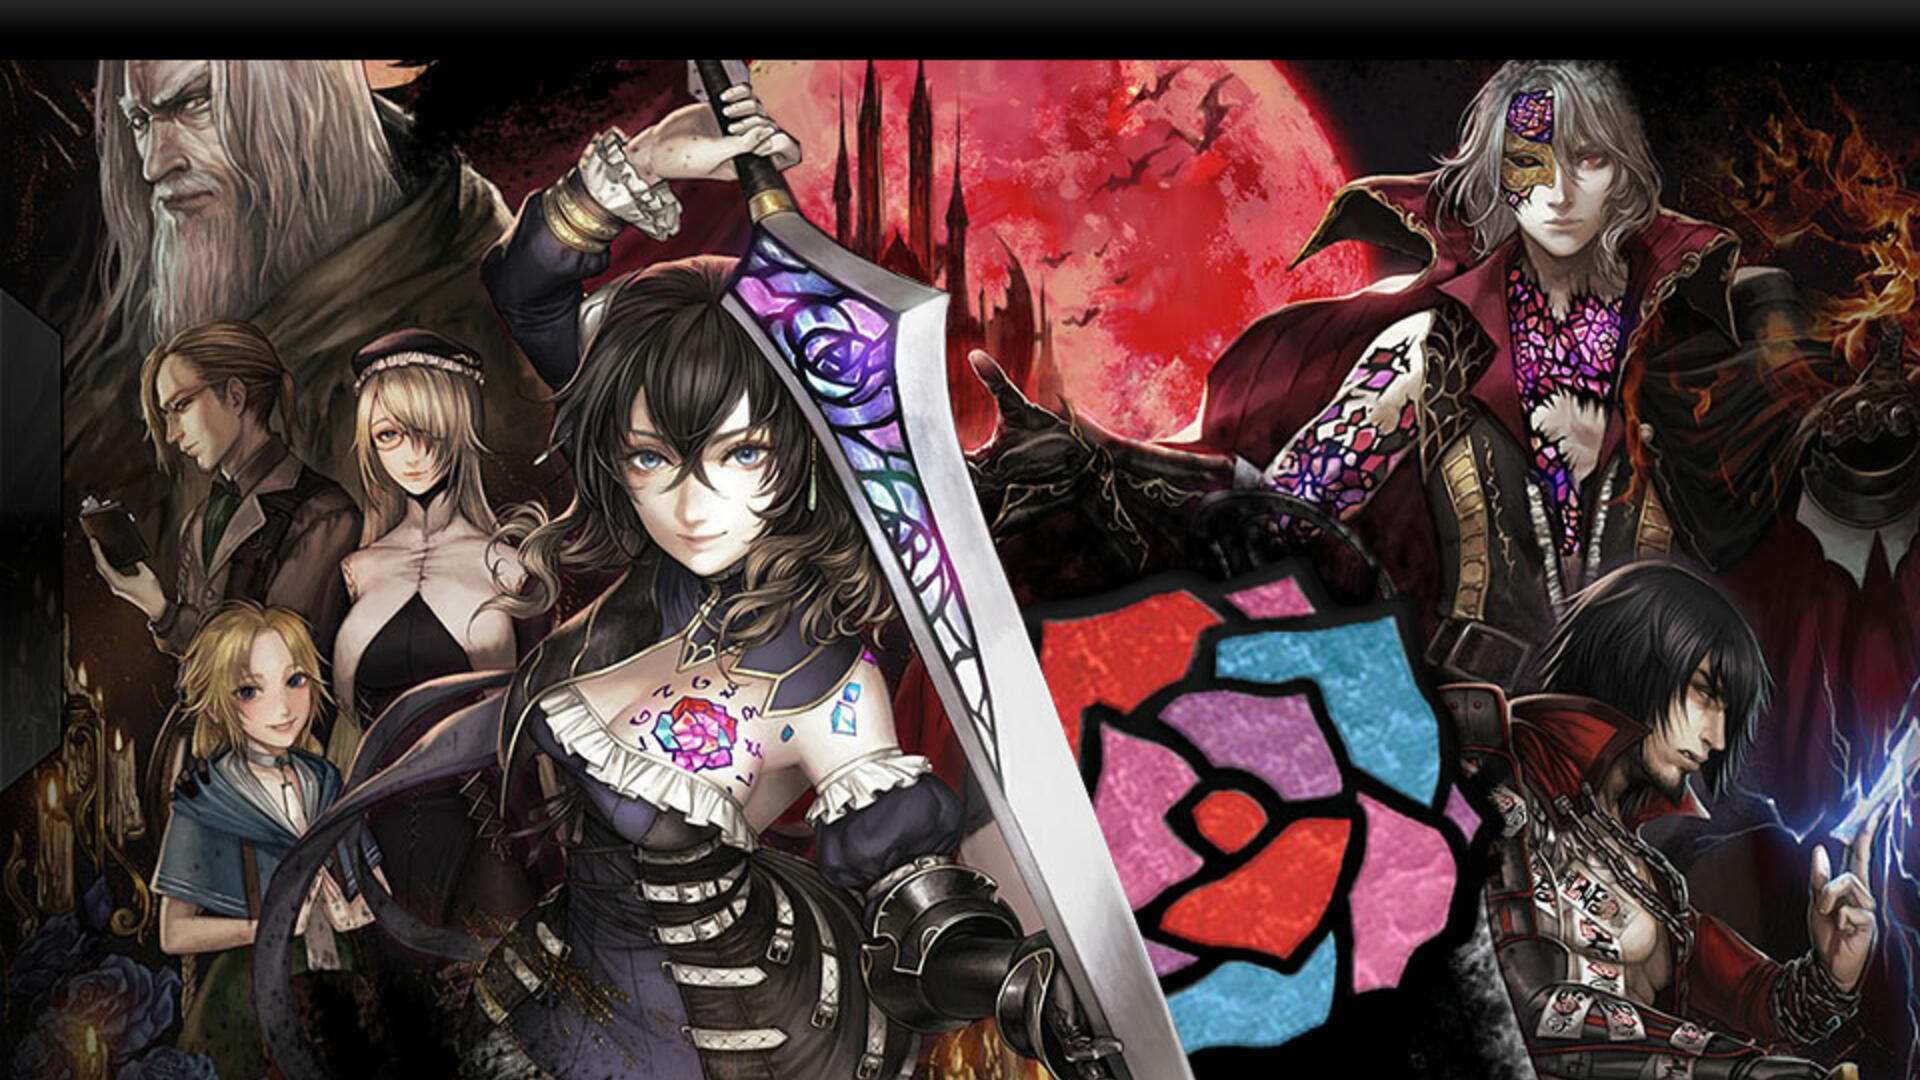 Bloodstained for Switch Has Problems, but it's Not as Bad as You Might Think